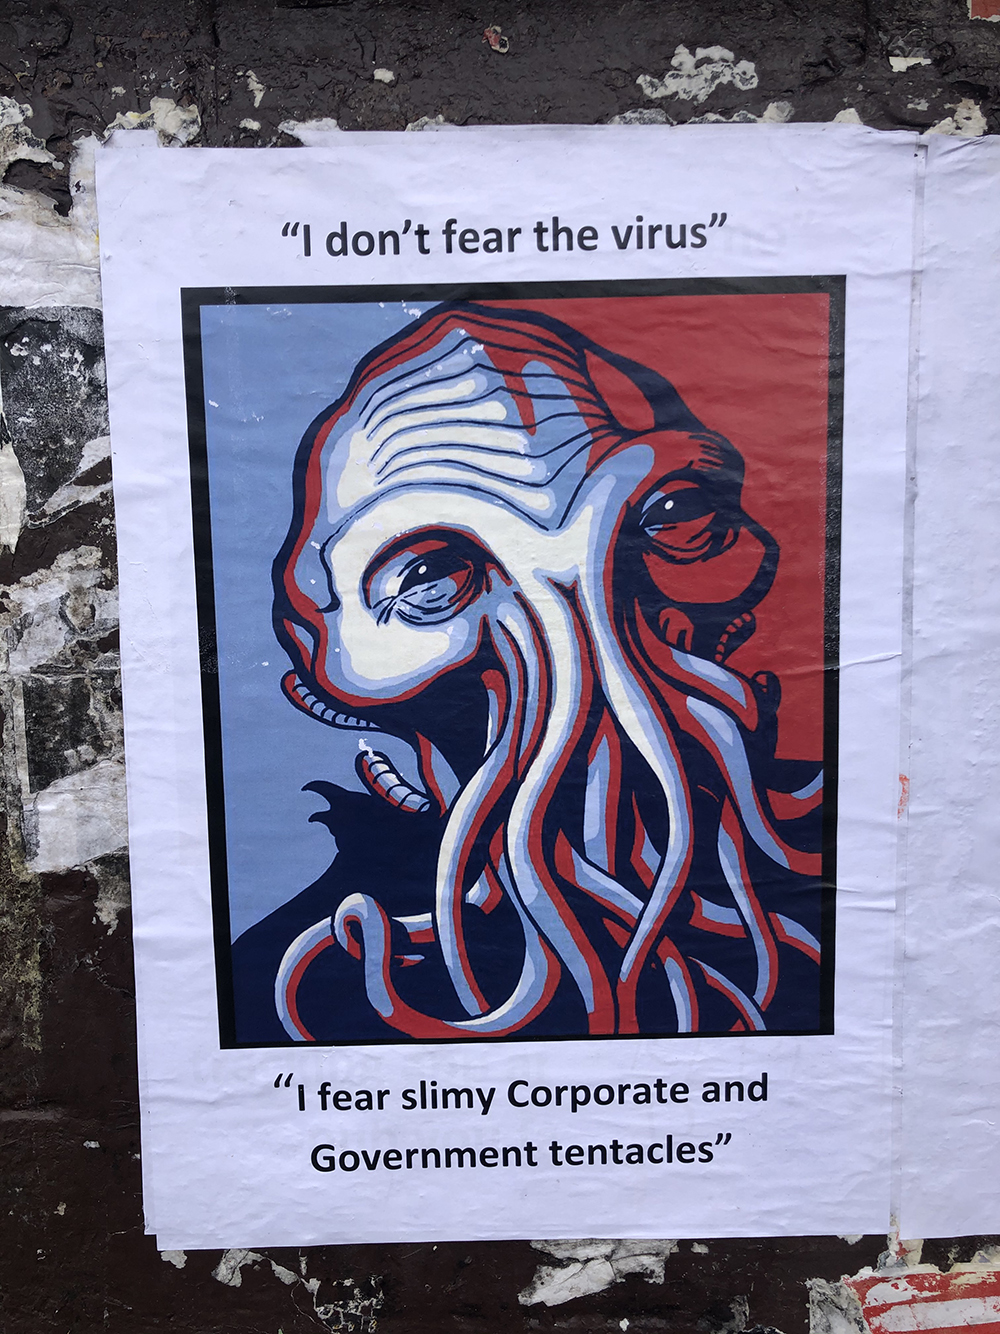 Paste-up sign photographed in Sydney on June 2, 2020, in the wake of a government proposal that all residents install a tracking app on their phones for contact tracing and notification. Photo by Saffaa Hassanein. Poster artist anonymous.